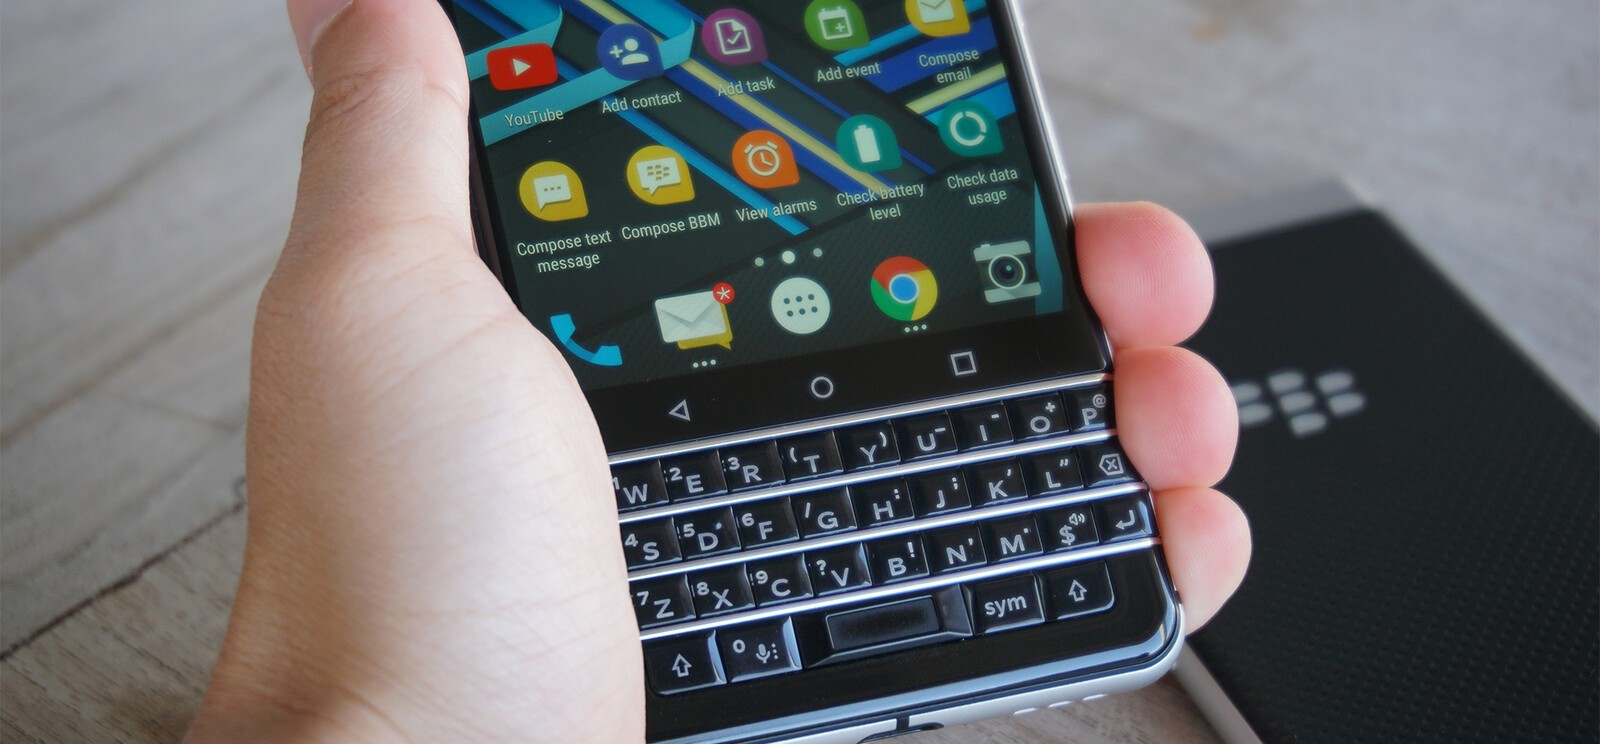 How to set up Exchange e-mail on the BlackBerry KEYone